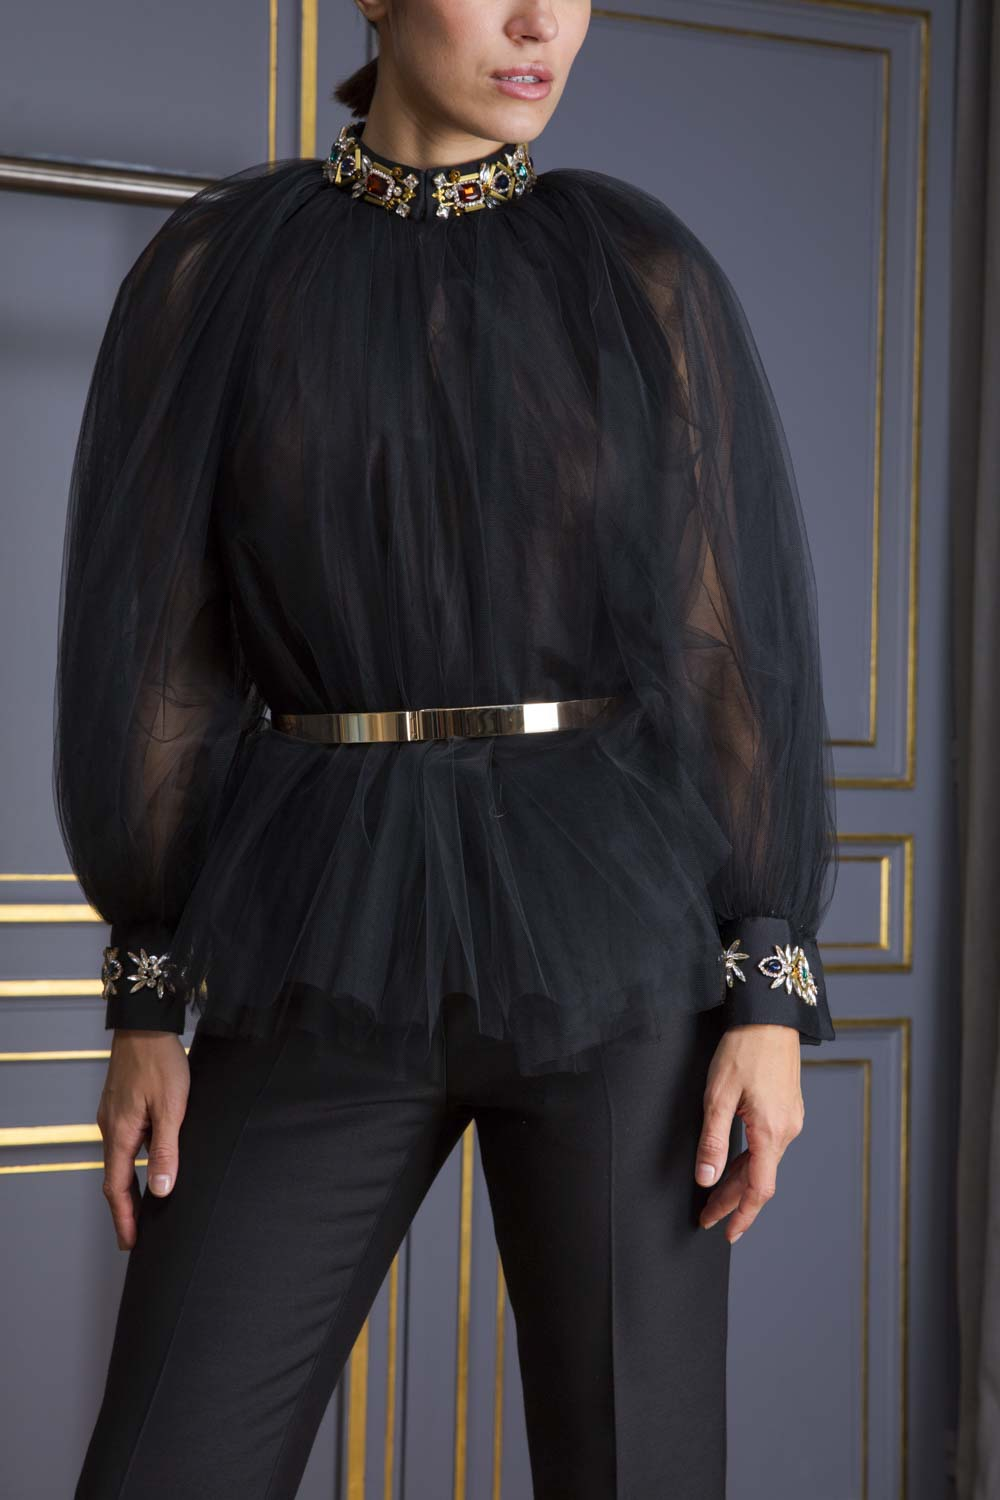 Sheer black tulle blouse with balloon sleeves and jewel-embellished collar and cuffs